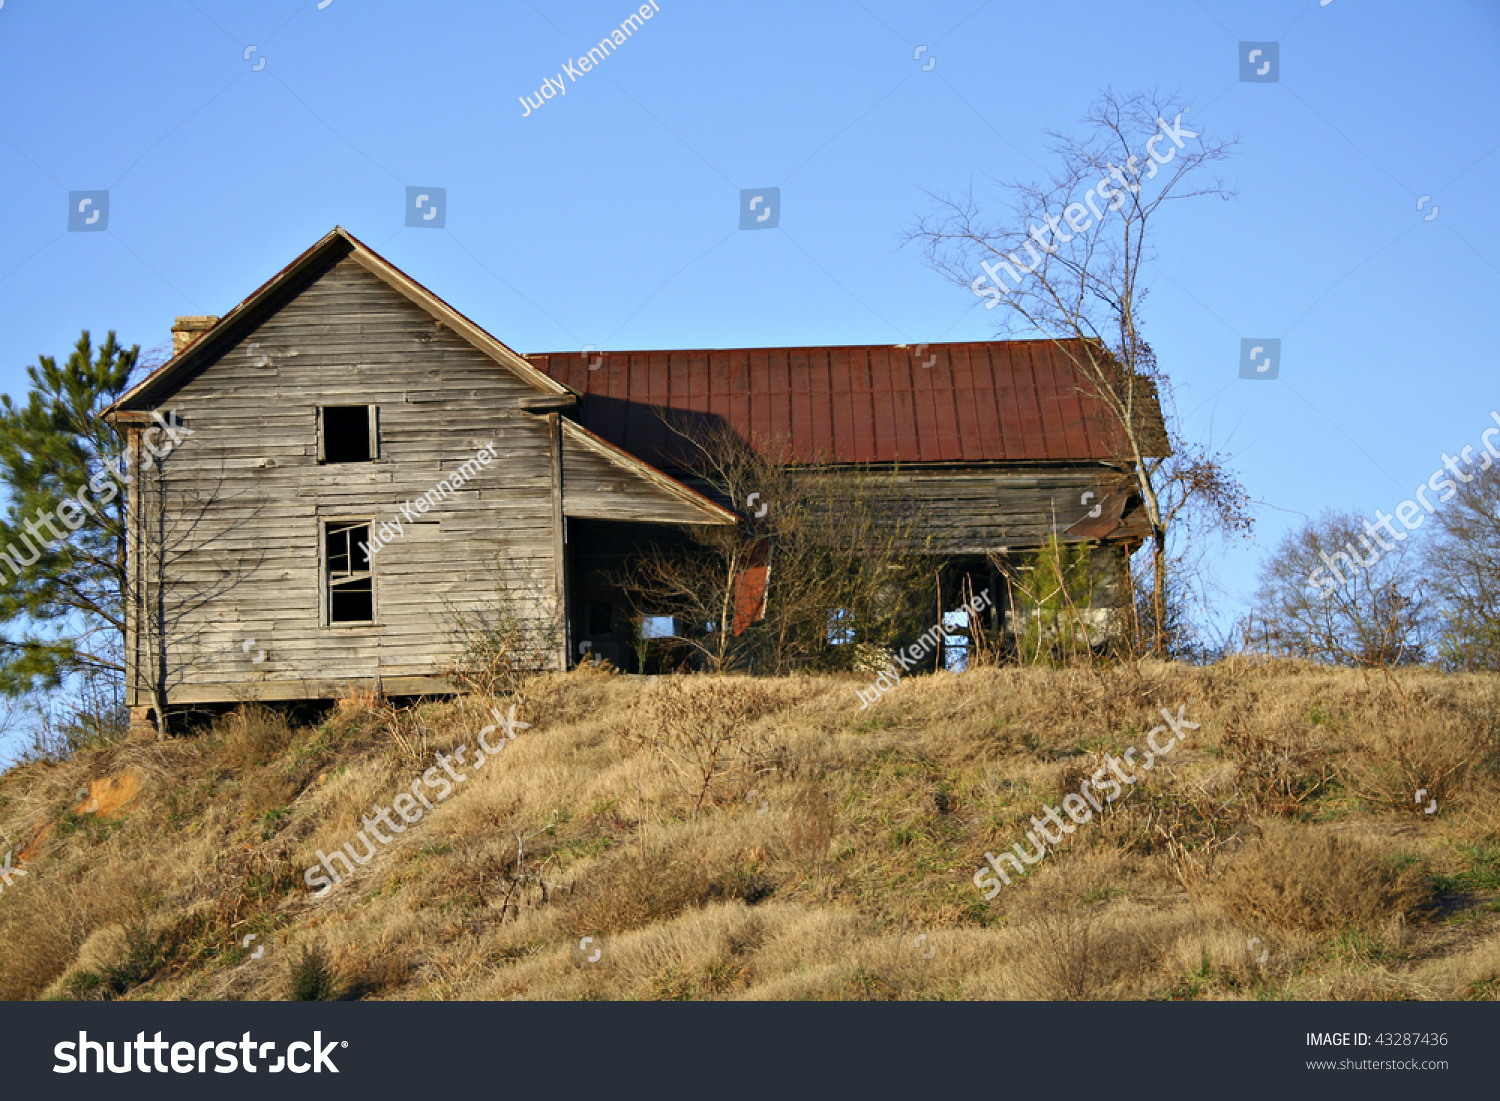 Old Wooden House With Rusted Tin Roof Sitting On Hillside